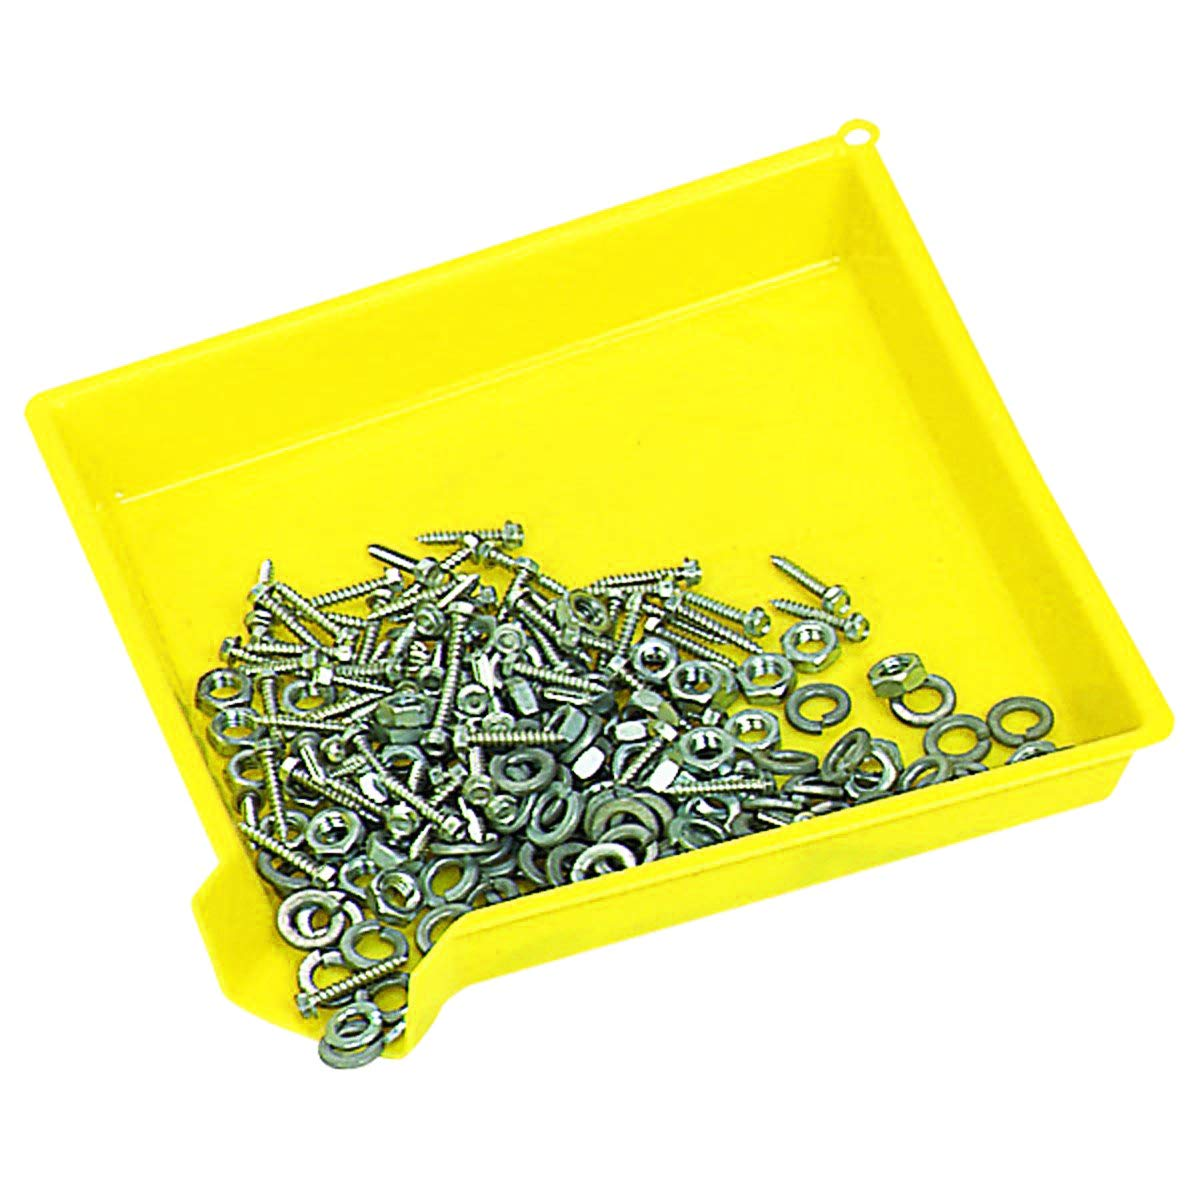 Easy Sorter Funnel Tray 9.5 4-Pack free shipping inches Max 55% OFF x 1.5